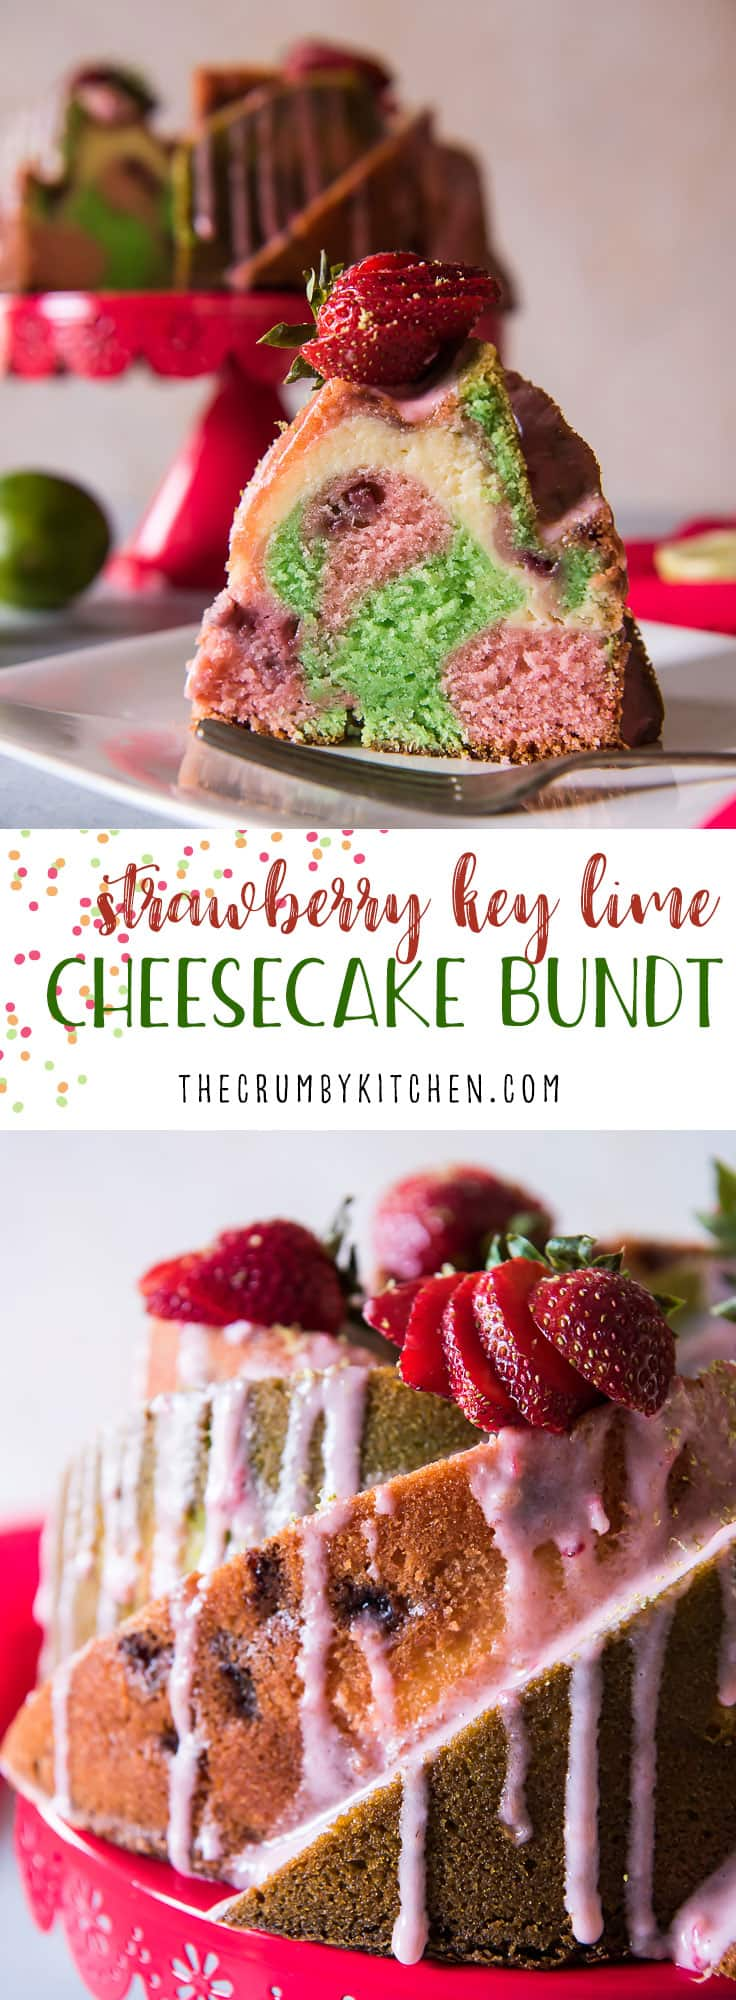 Strawberry Key Lime Cheesecake Bundt Cake! Alternating swirls of fresh strawberry pound cake and key lime pound cake layered with cheesecake filling, then drizzled with a tasty cream cheese glaze.